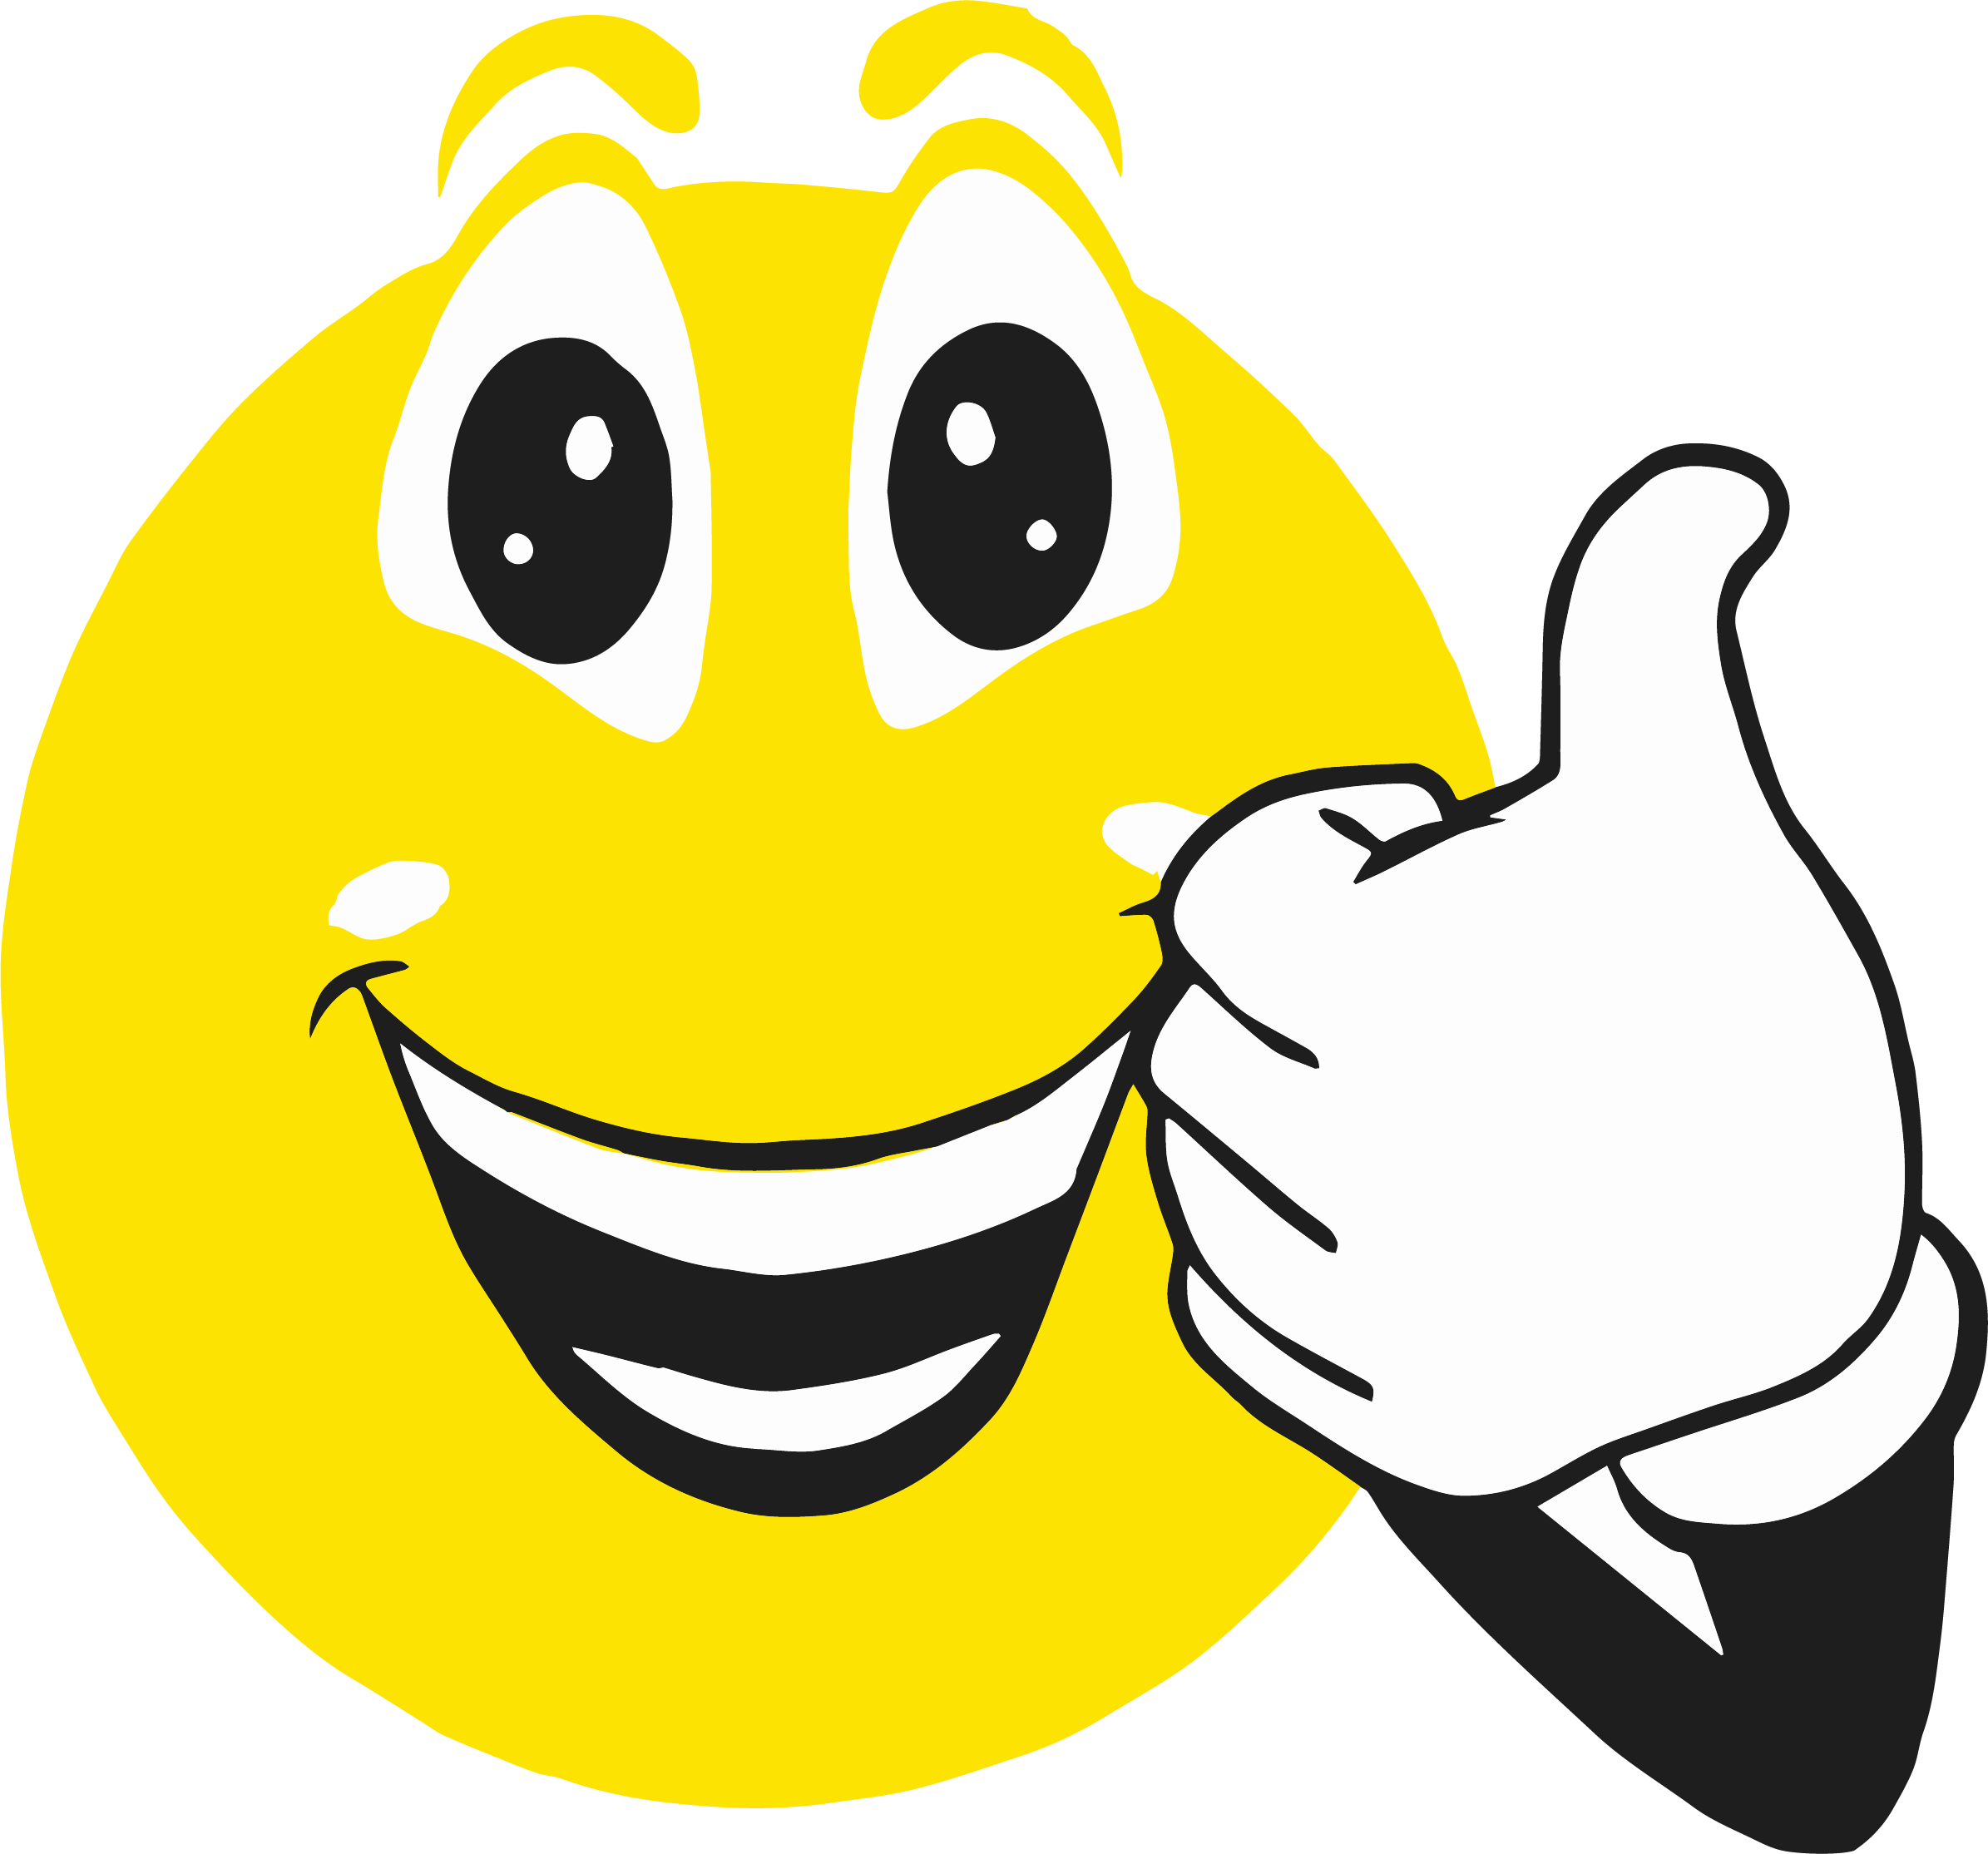 Clipart smiley face with thumbs up freeuse download Smiley Face Clip Art Thumbs Up | Clipartly.com freeuse download